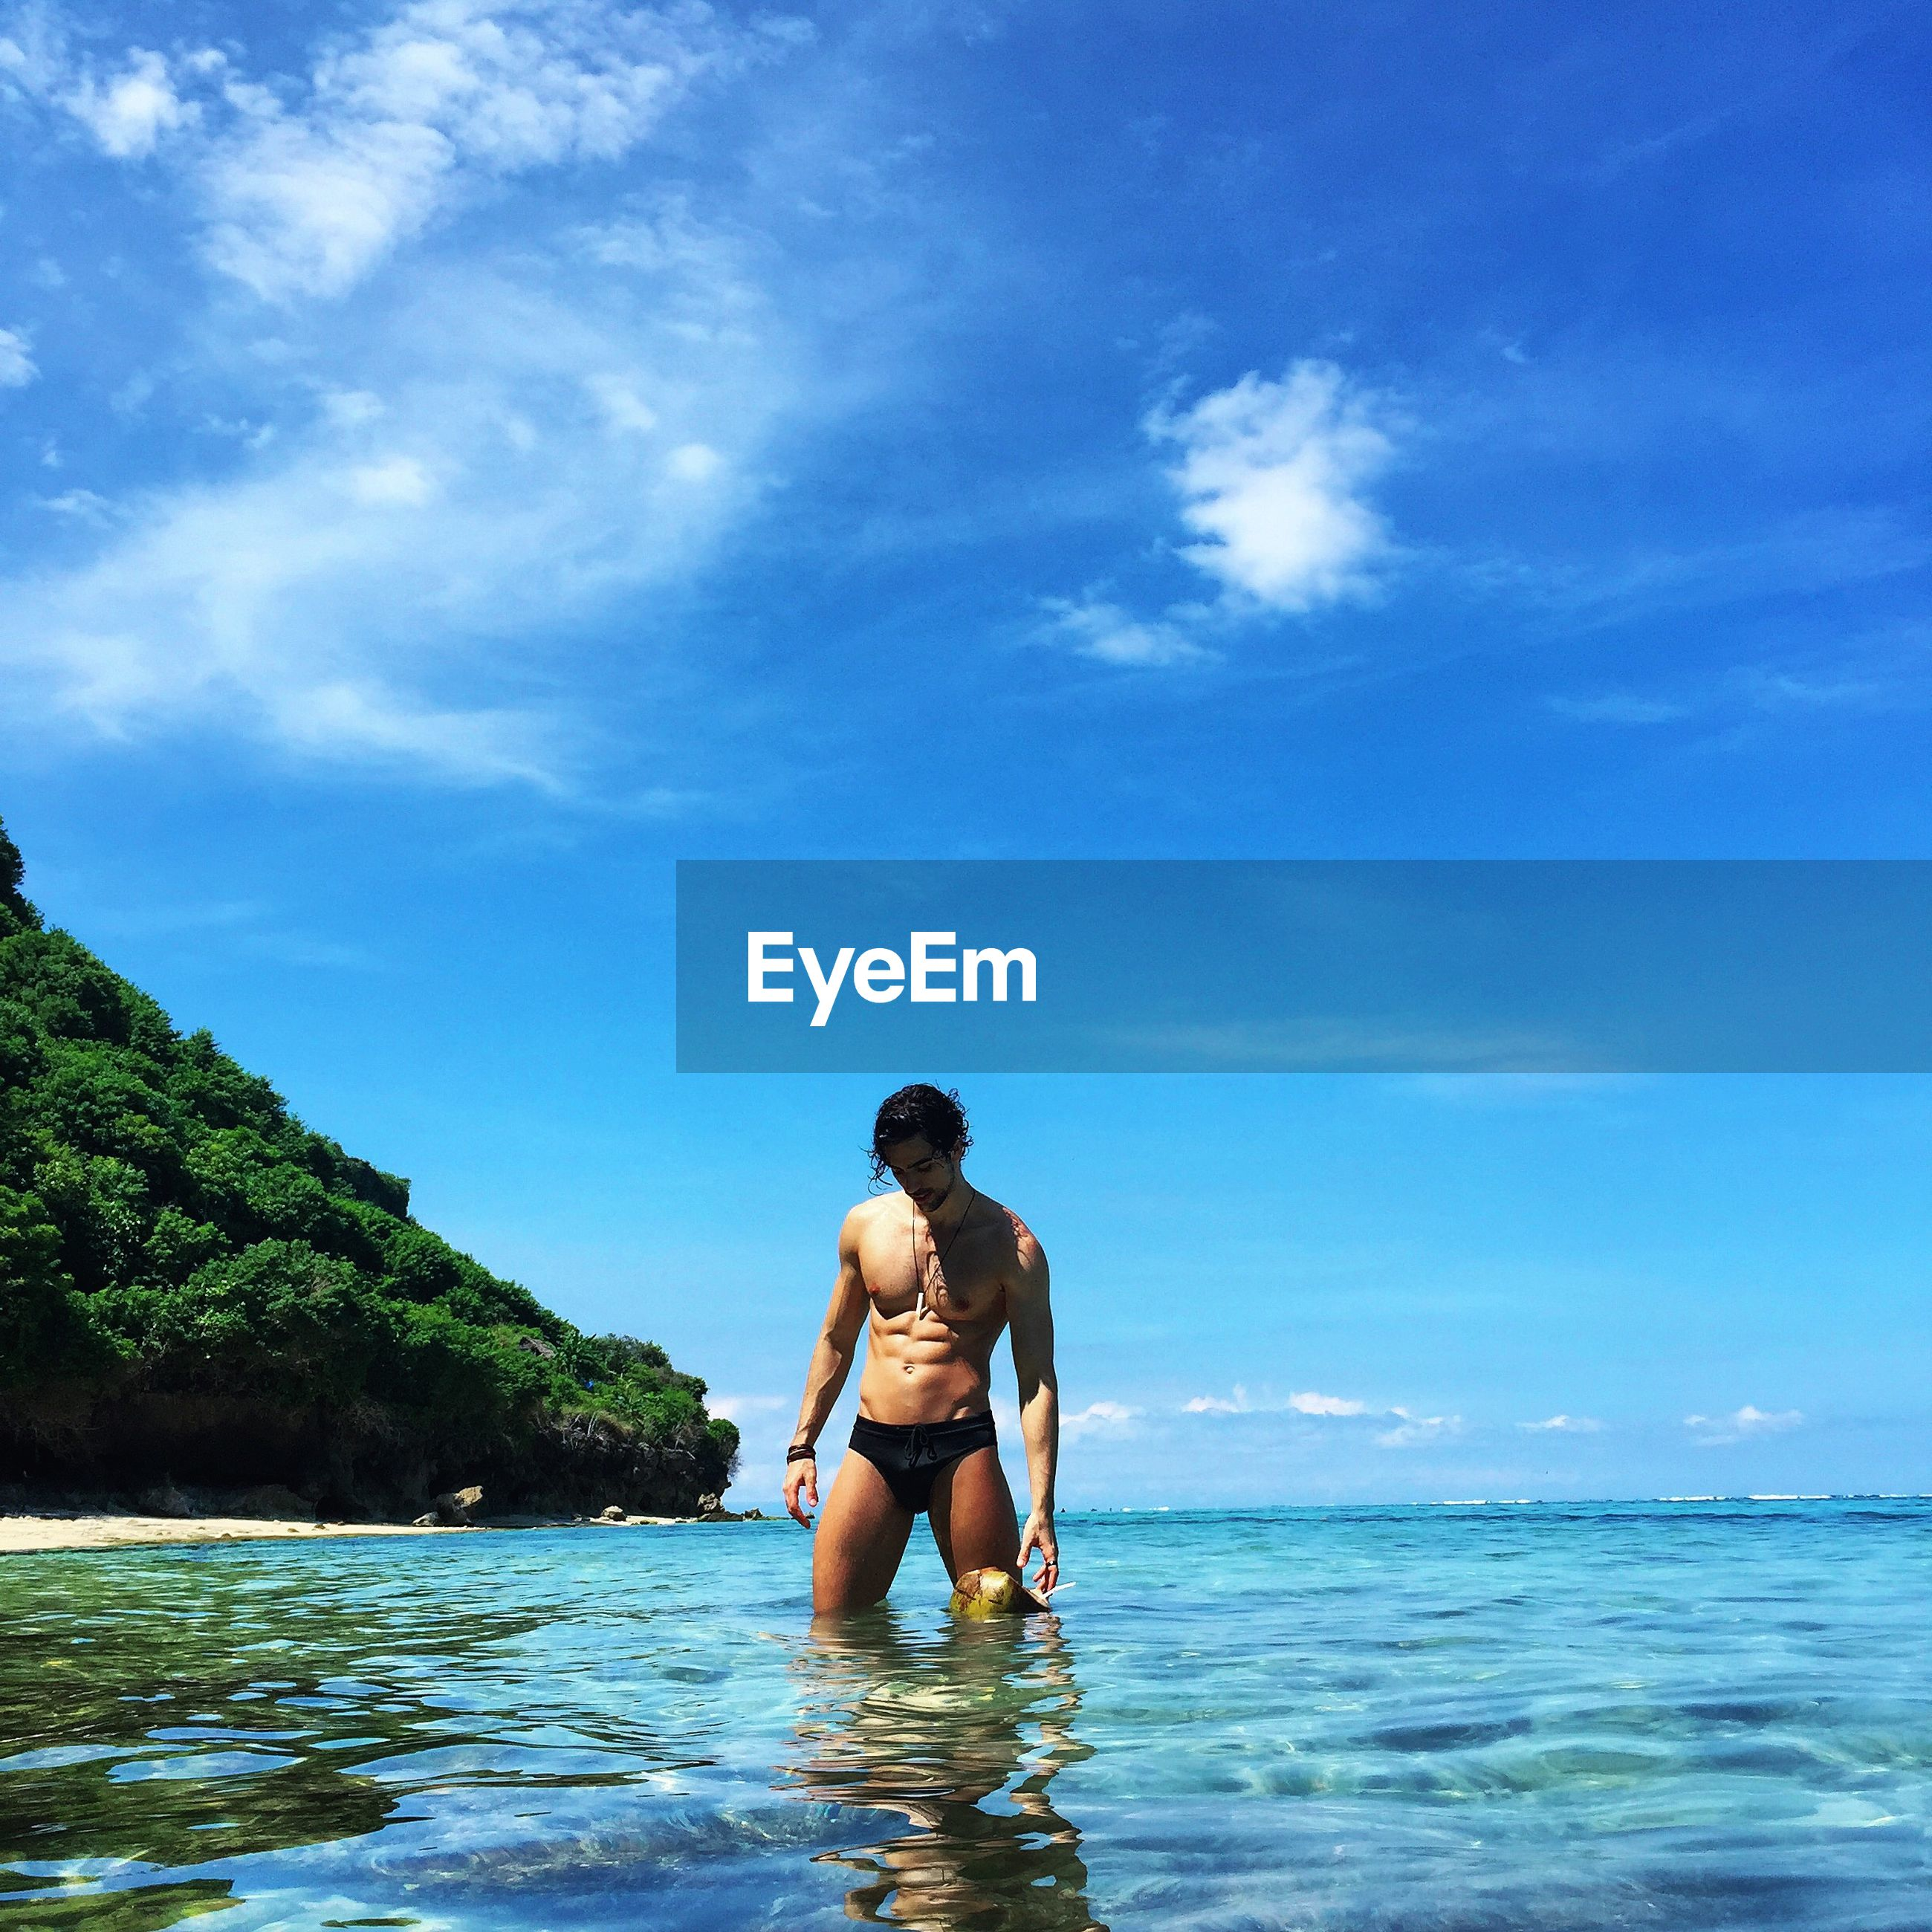 water, leisure activity, lifestyles, sea, sky, vacations, full length, young adult, blue, waterfront, shirtless, person, casual clothing, rear view, nature, beauty in nature, scenics, young men